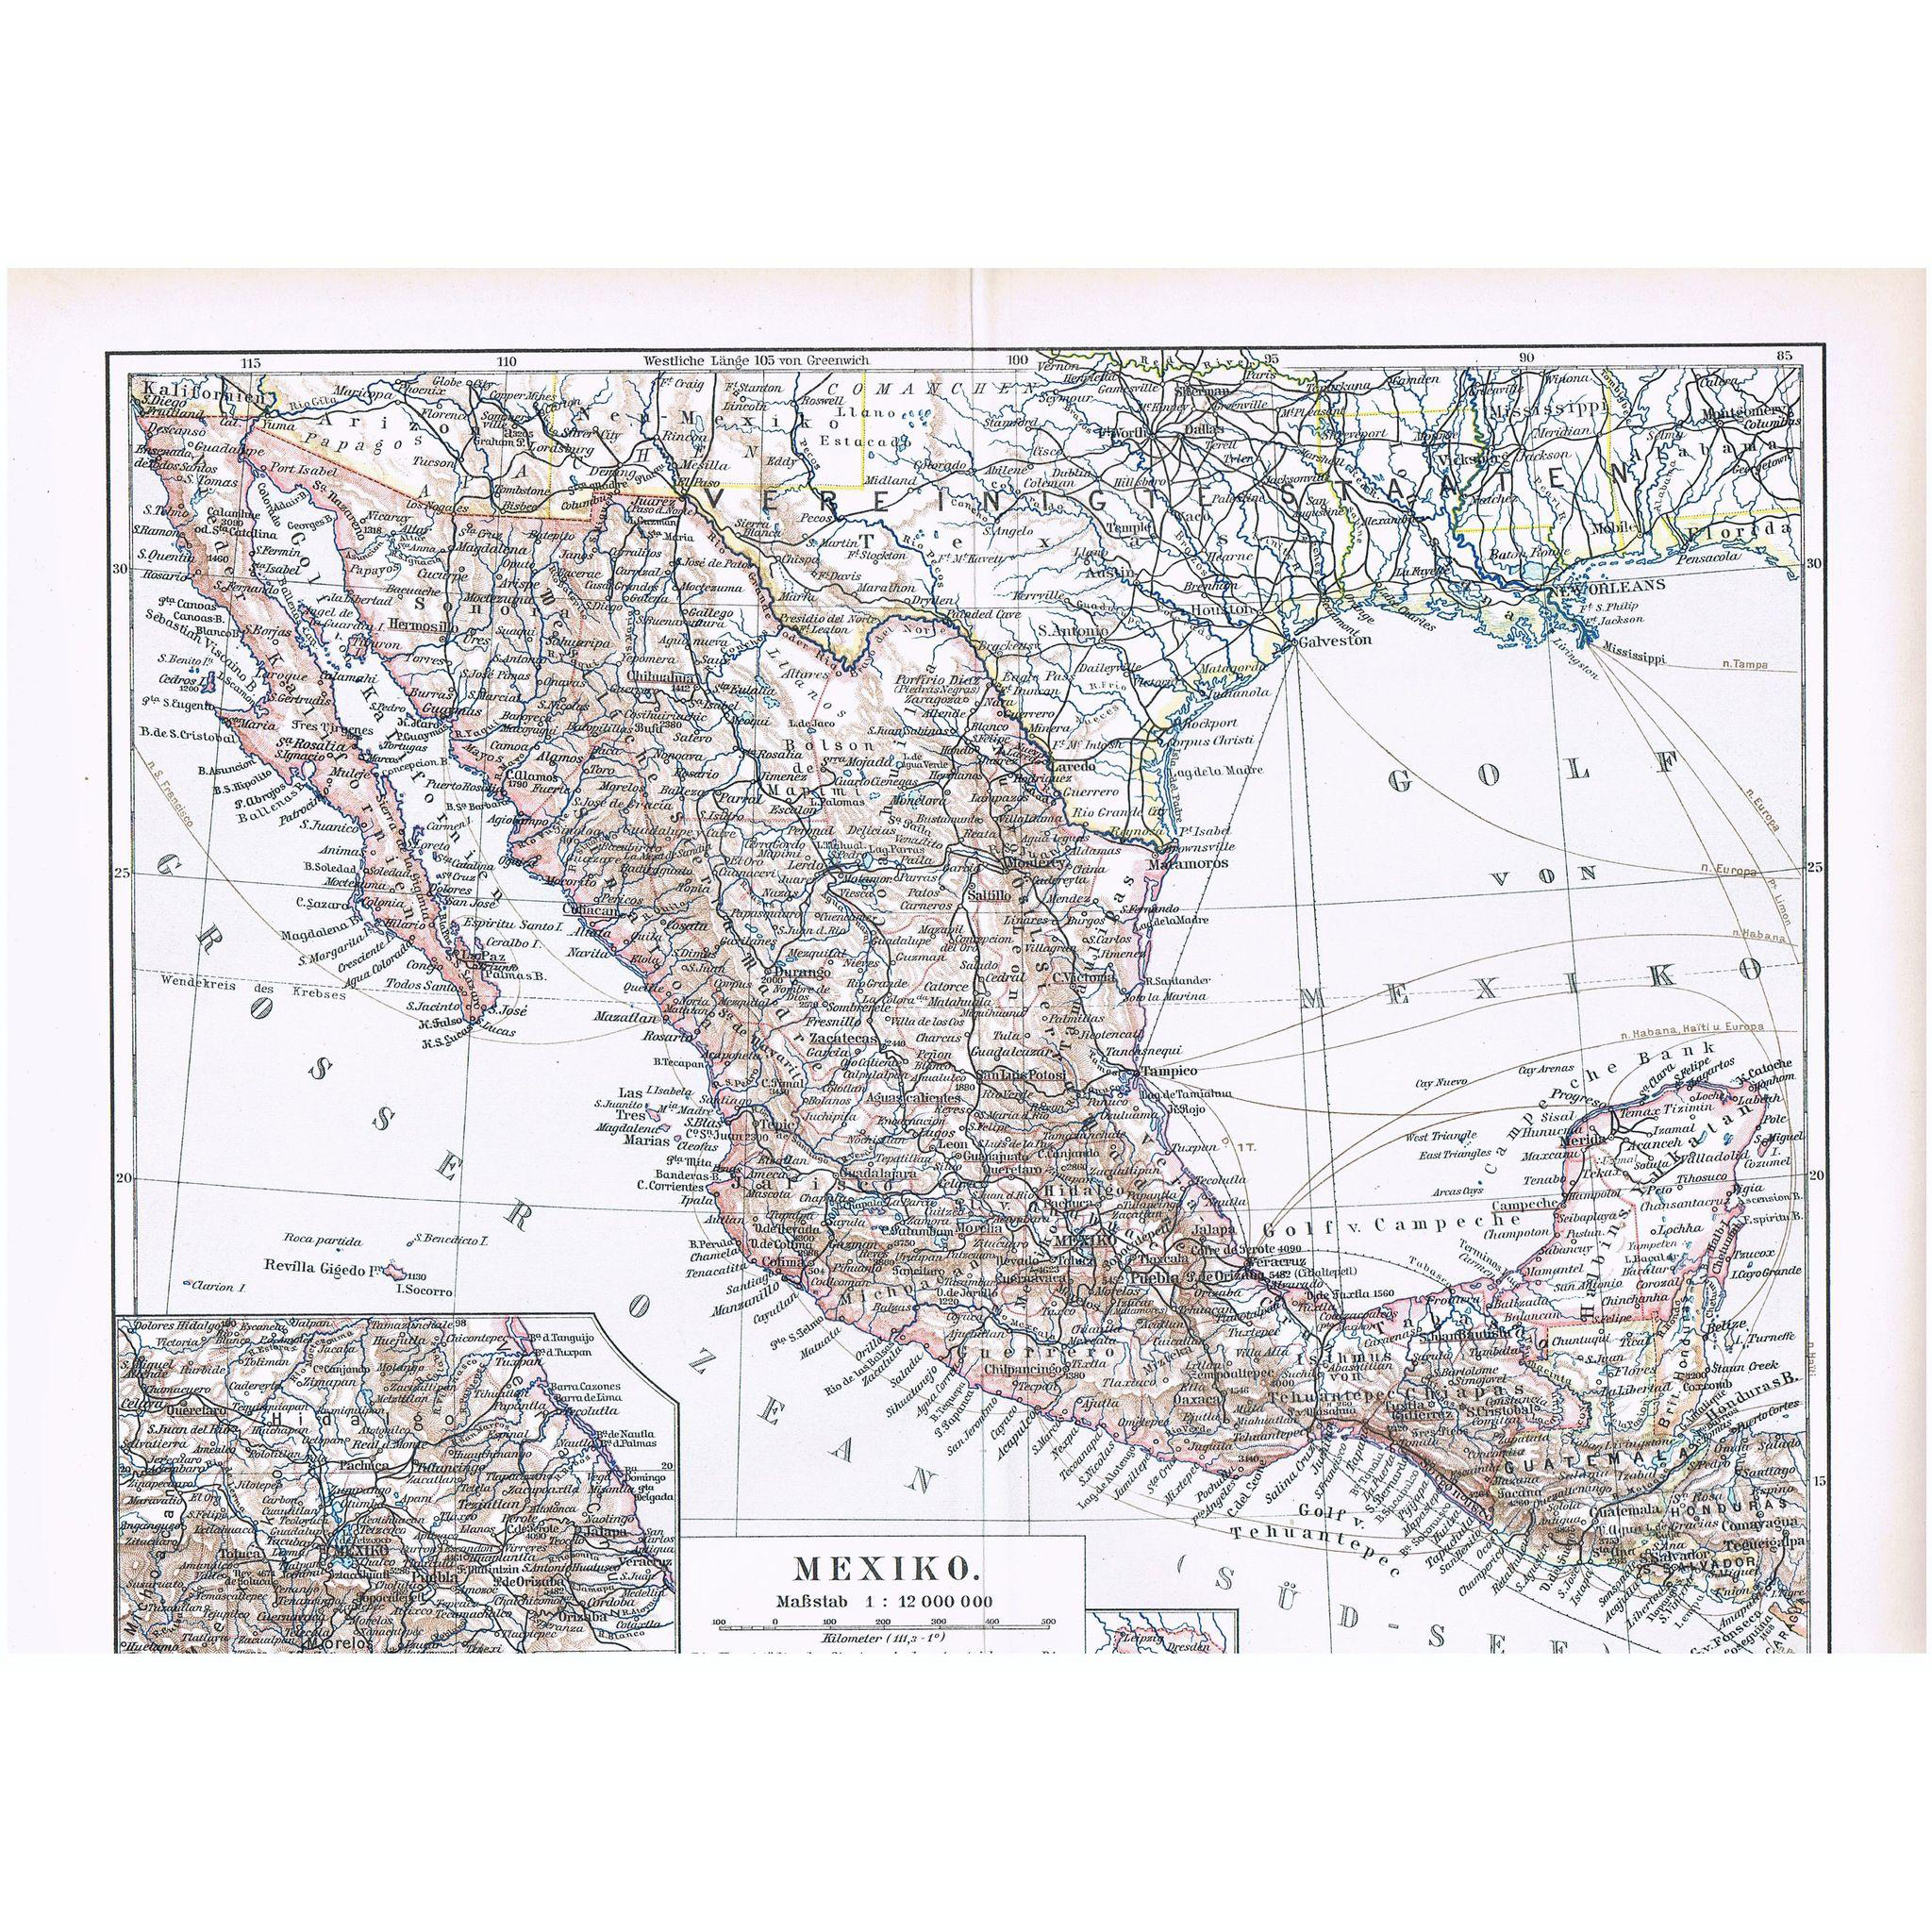 Two old Maps from Mexico 1898